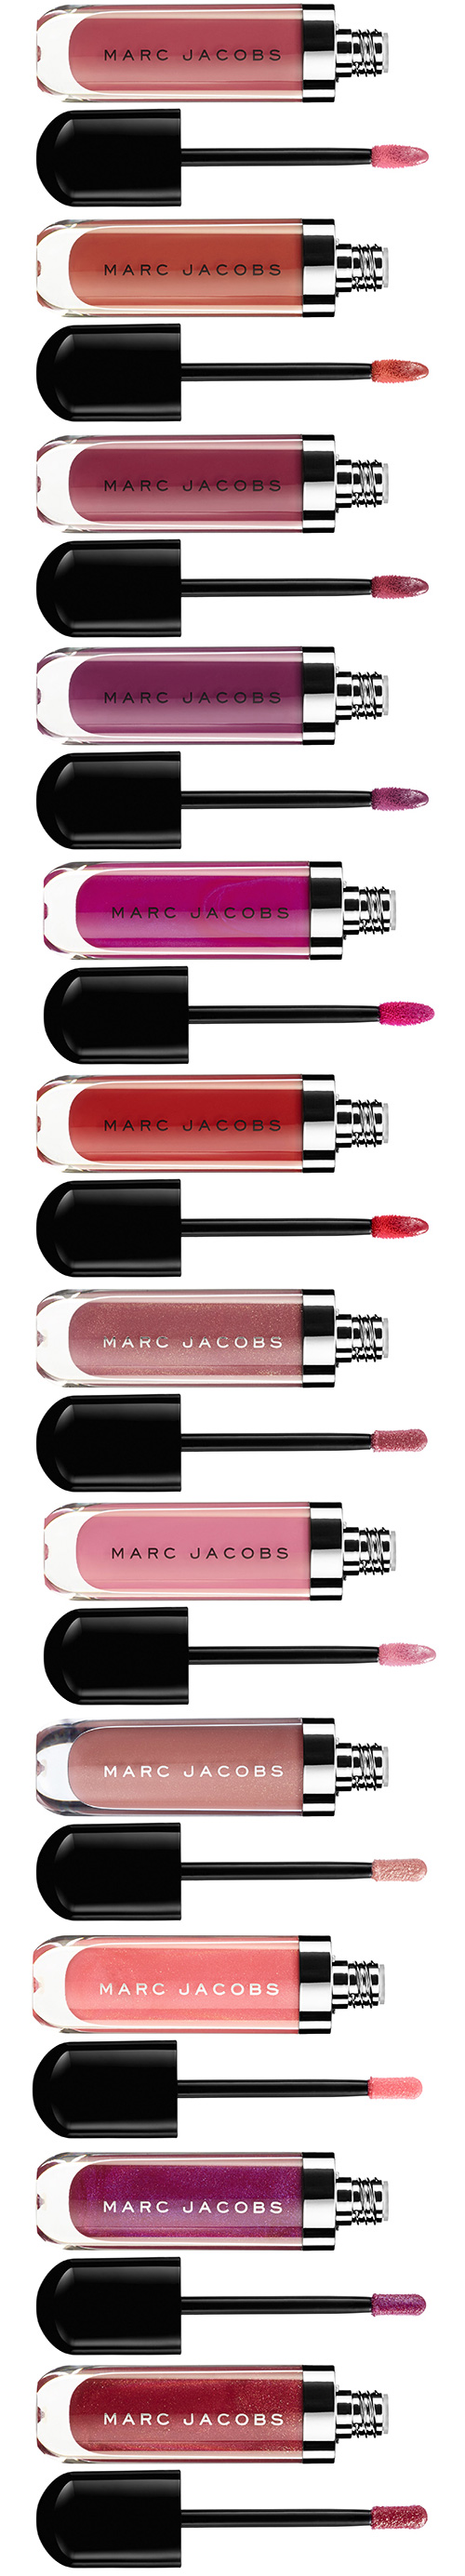 Marc-Jacobs-Fall-2013-Makeup-Collection-15